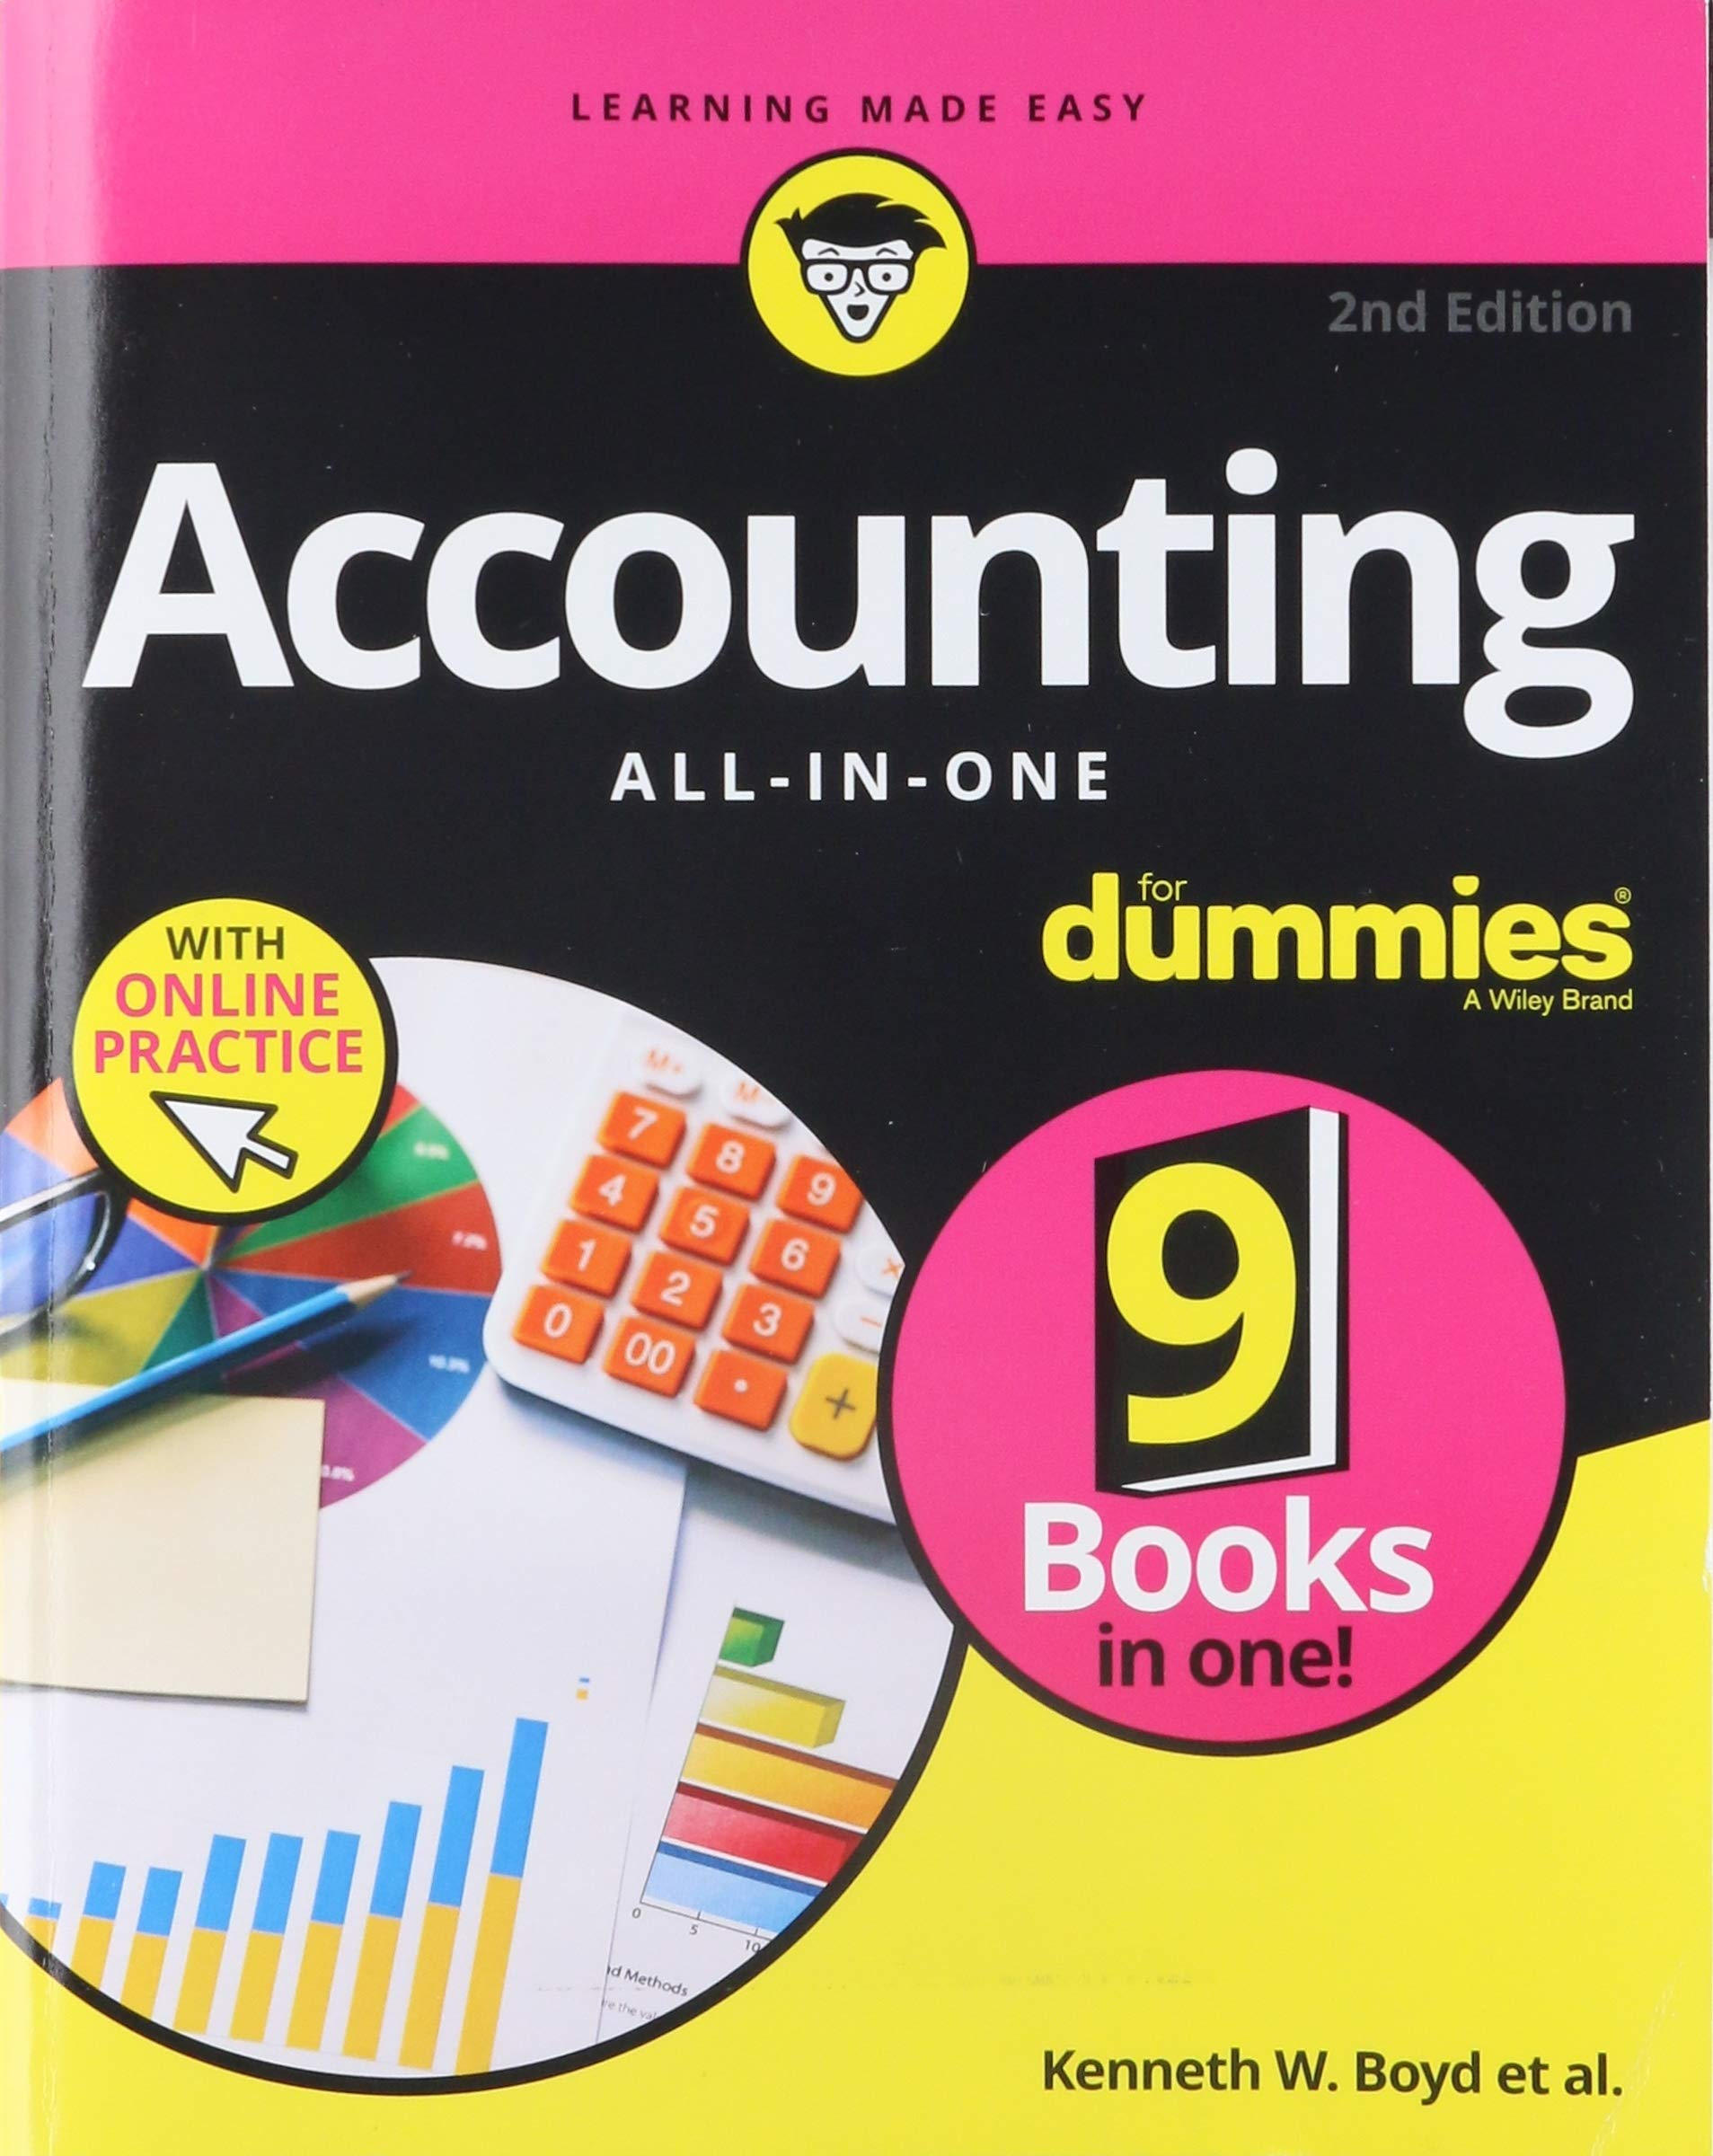 Accounting All Dummies Online Practice product image